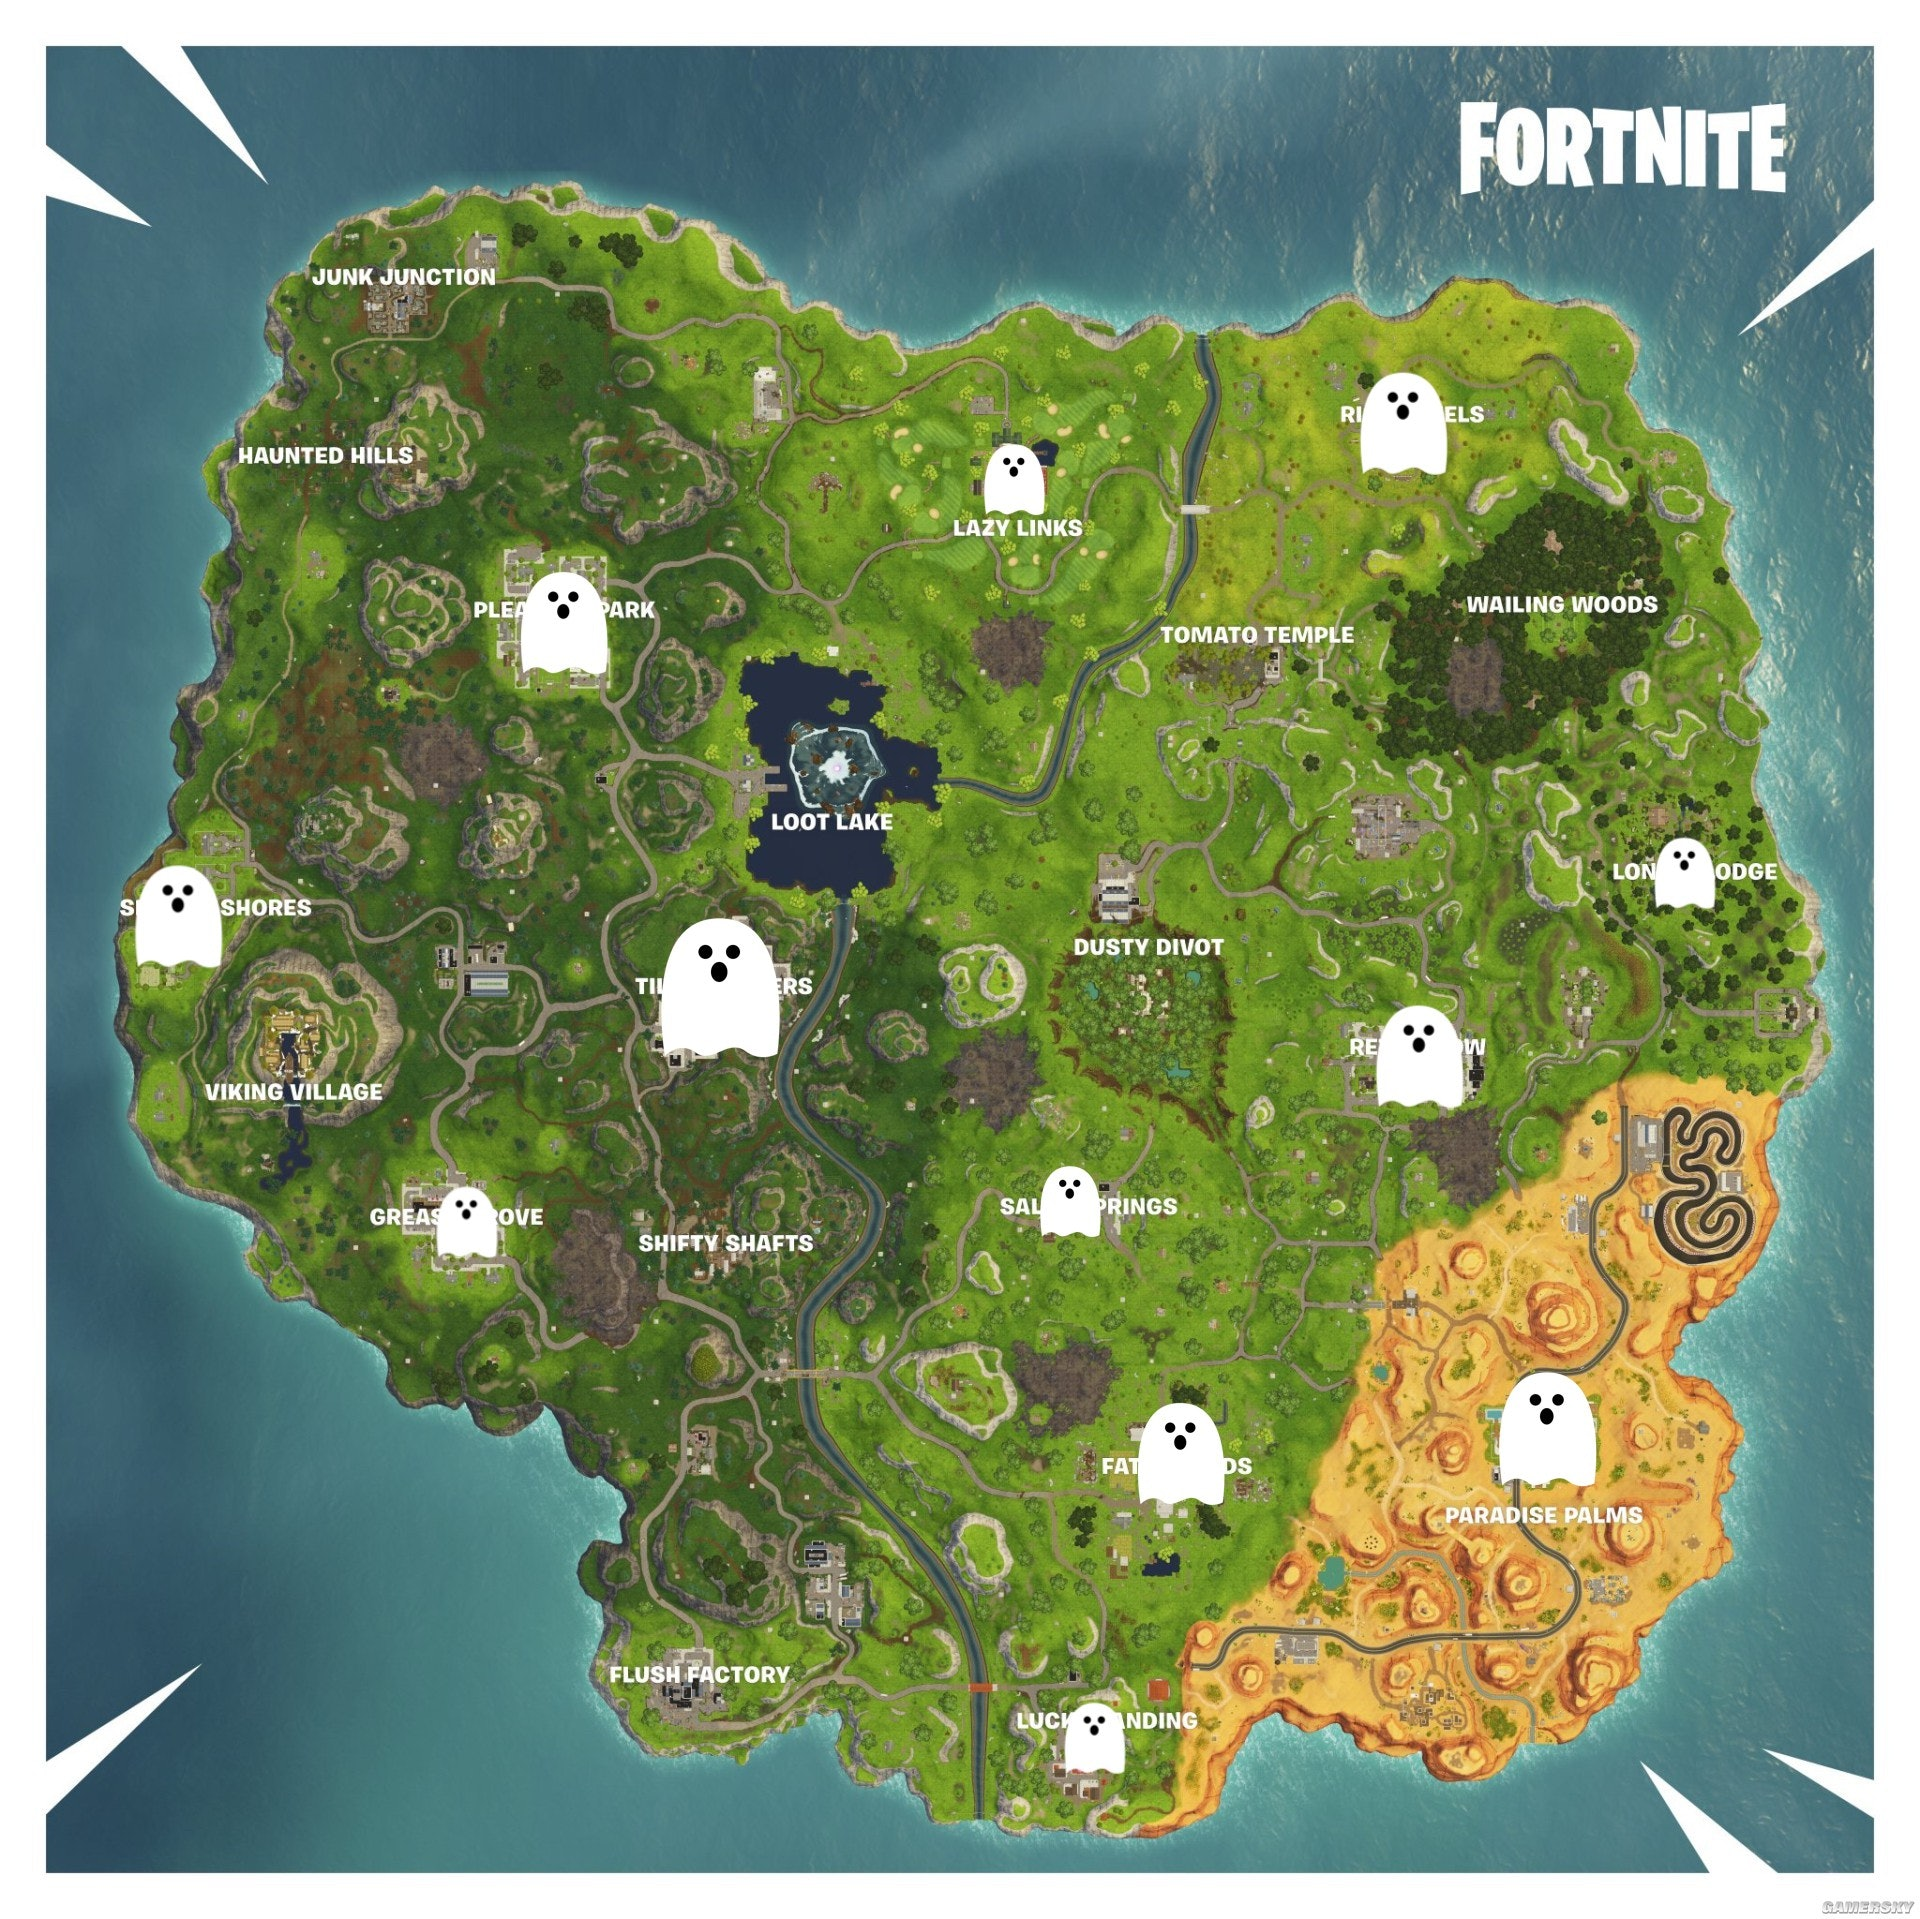 'Fortnite' Ghost Decoration Locations for Fortnitemares